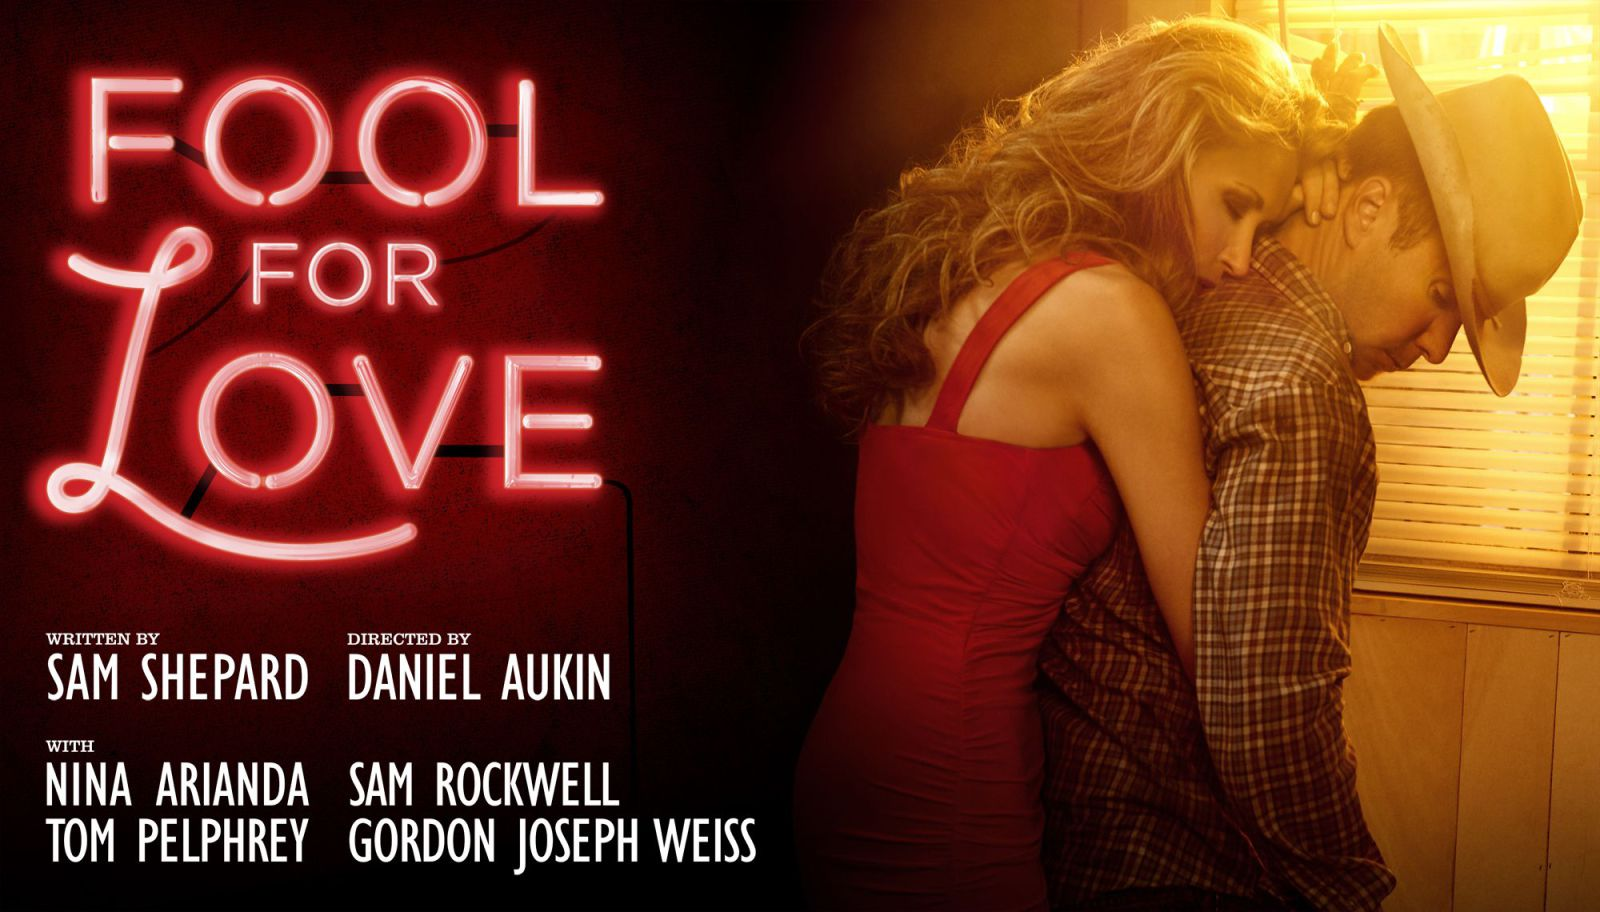 Nina Arianda in Fool for Love